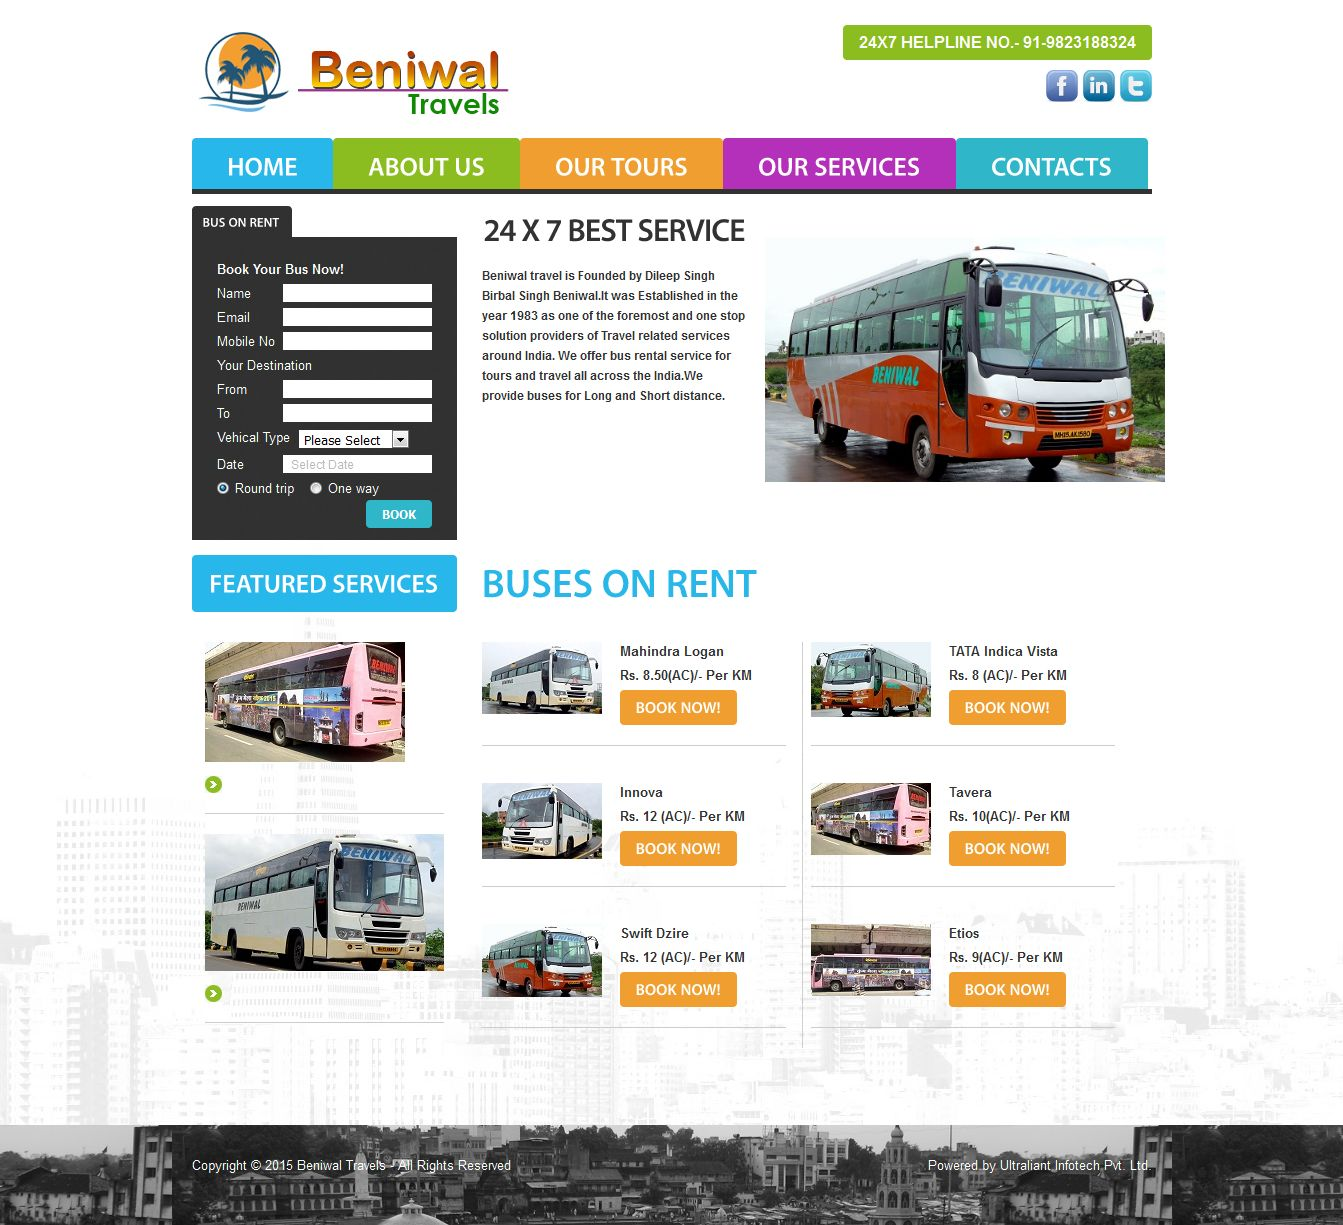 Beniwal Travels